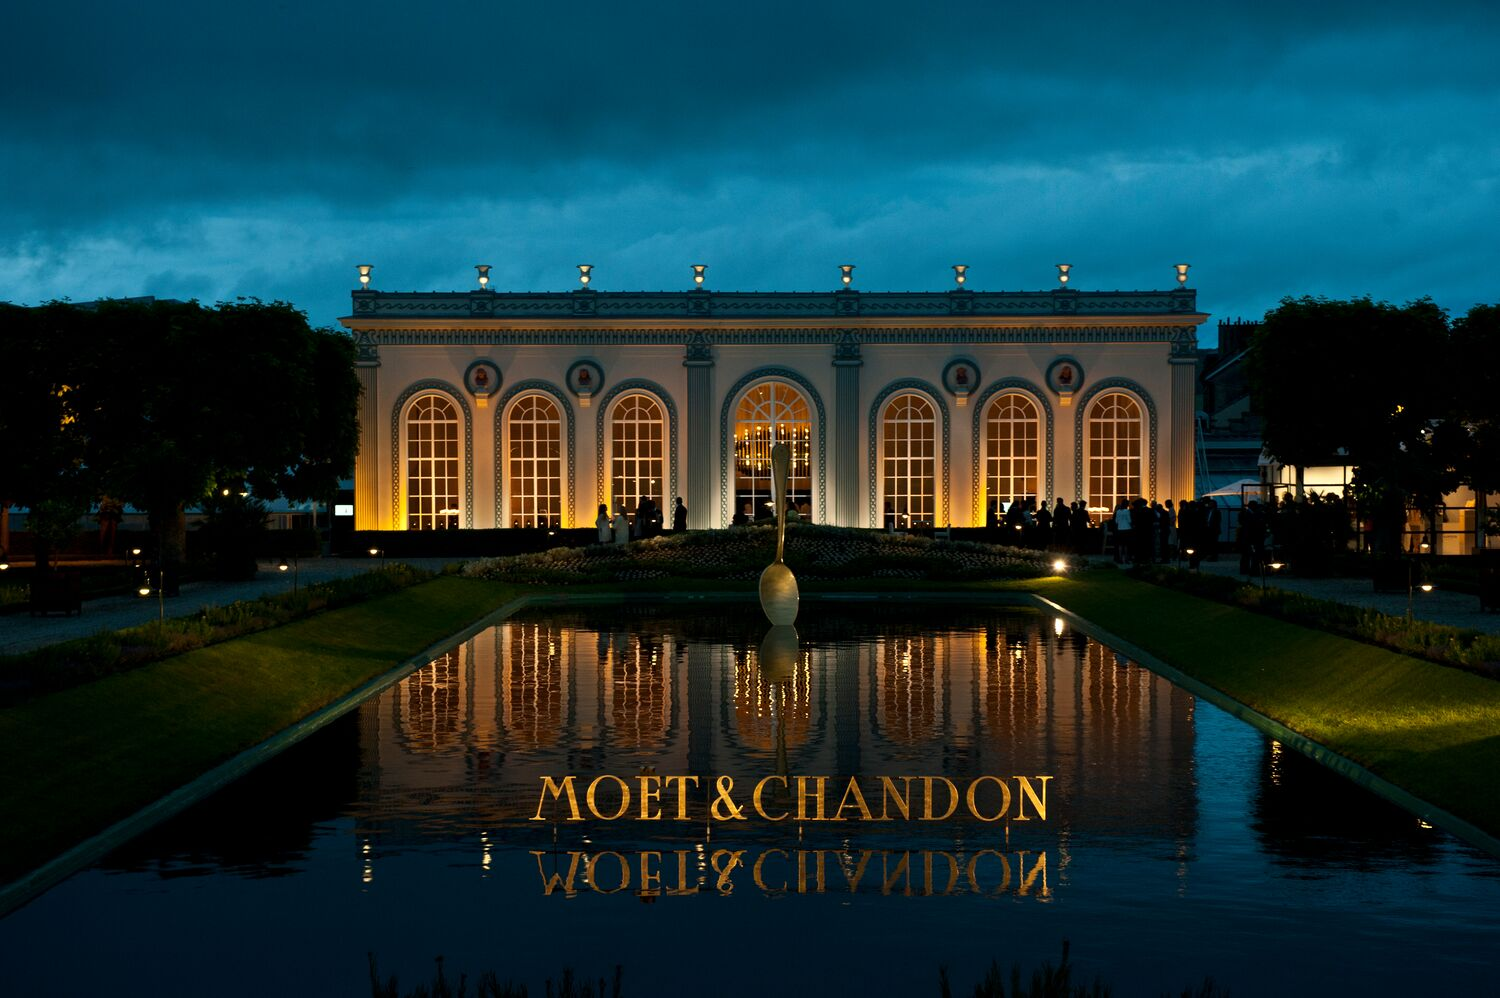 Moët & Chandon Le & pop-up restaurant